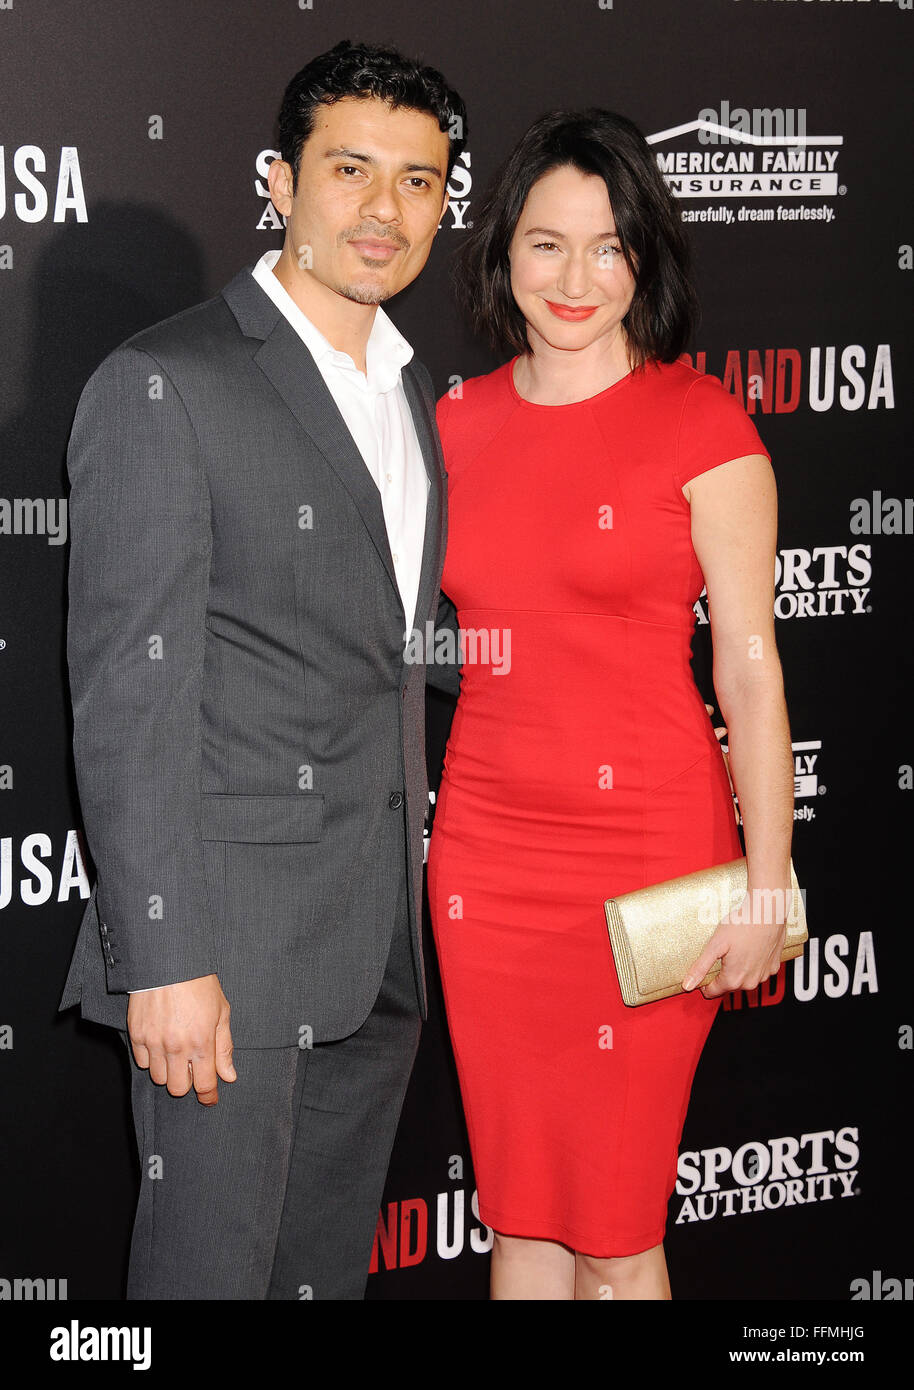 Actor Rigo Sanchez (L) and guest arrive at the World Premiere of Disney's 'McFarland, USA' at the El - Stock Image